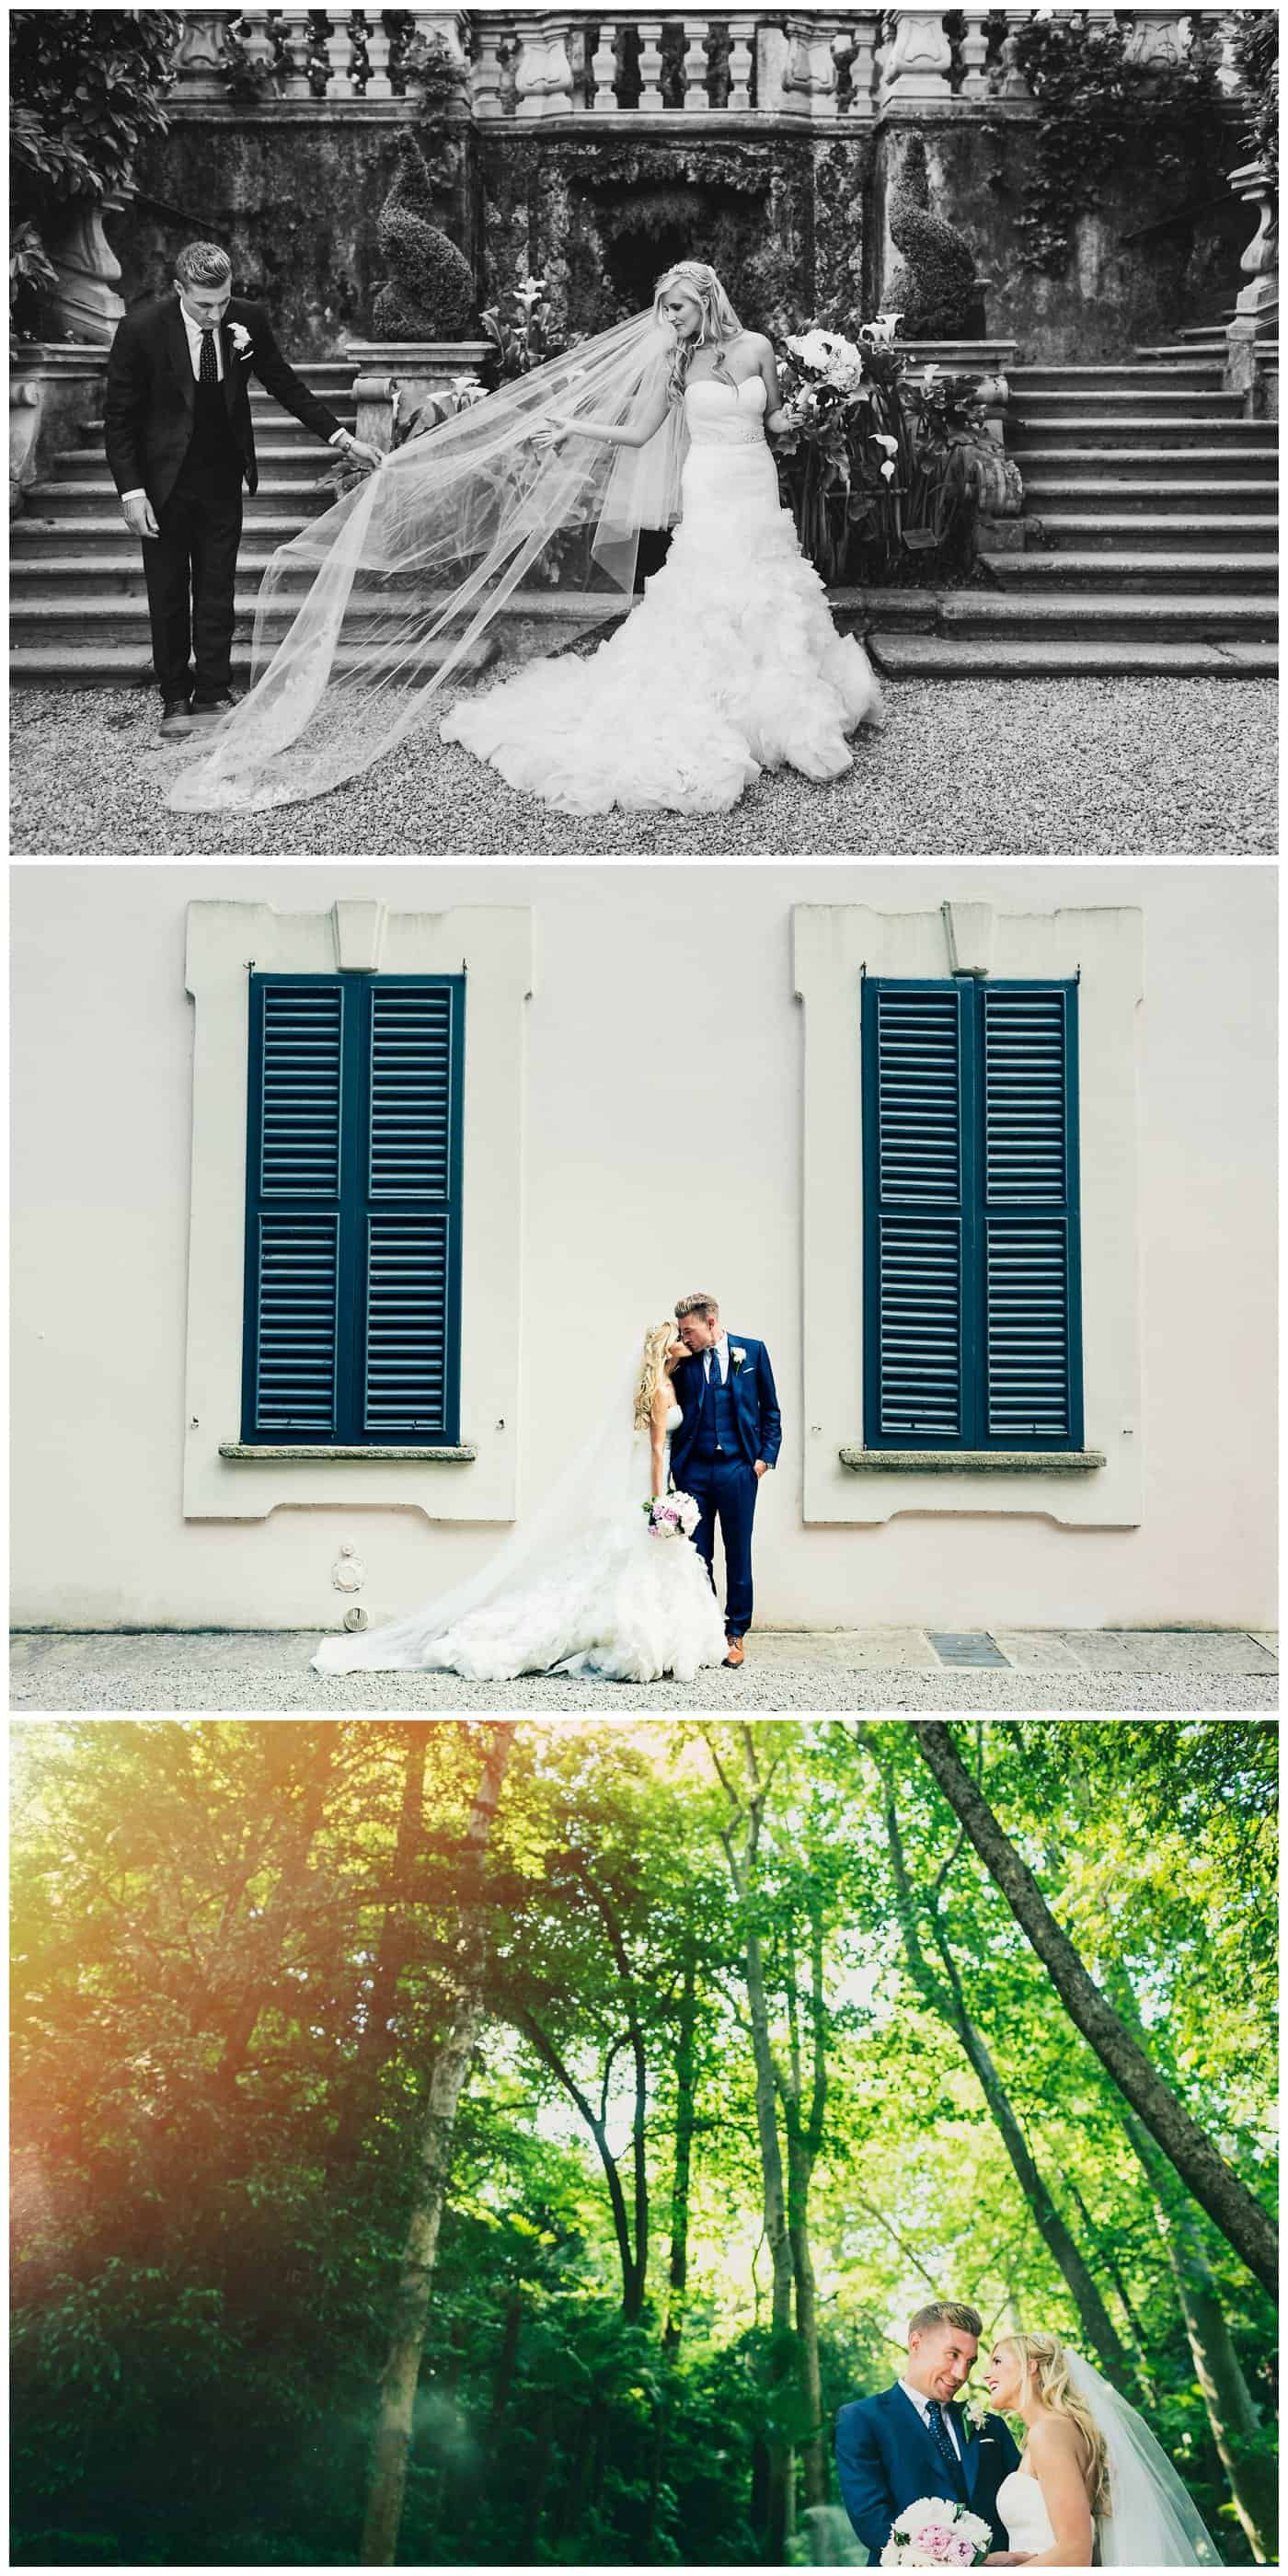 Villa Carlotta Como wedding photographers